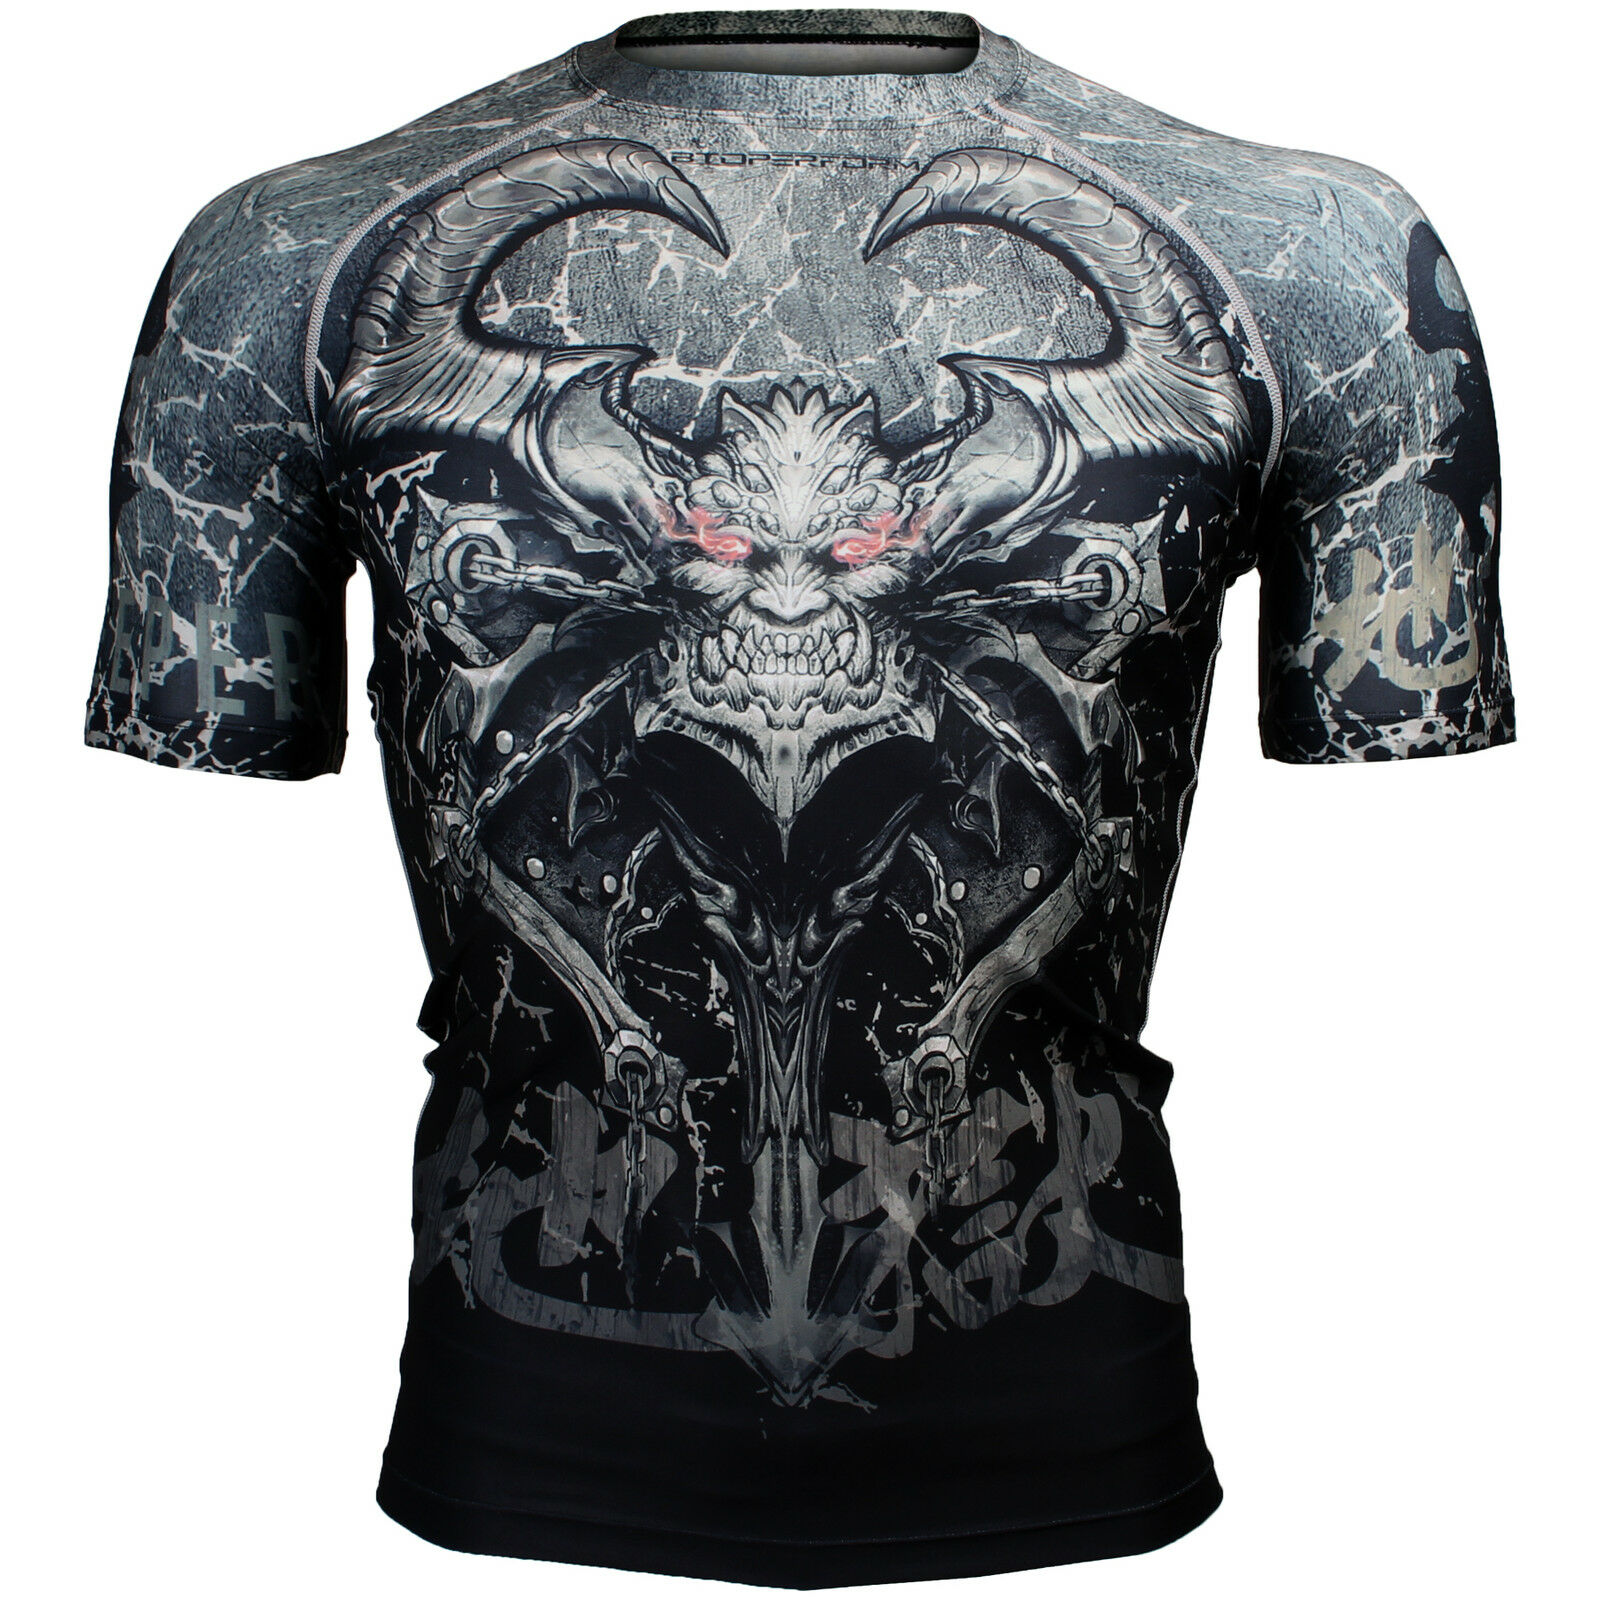 BTOPERFORM [FX-301] Skin Compression Base layer Rash guard T-shirt MMA Gym BJJ